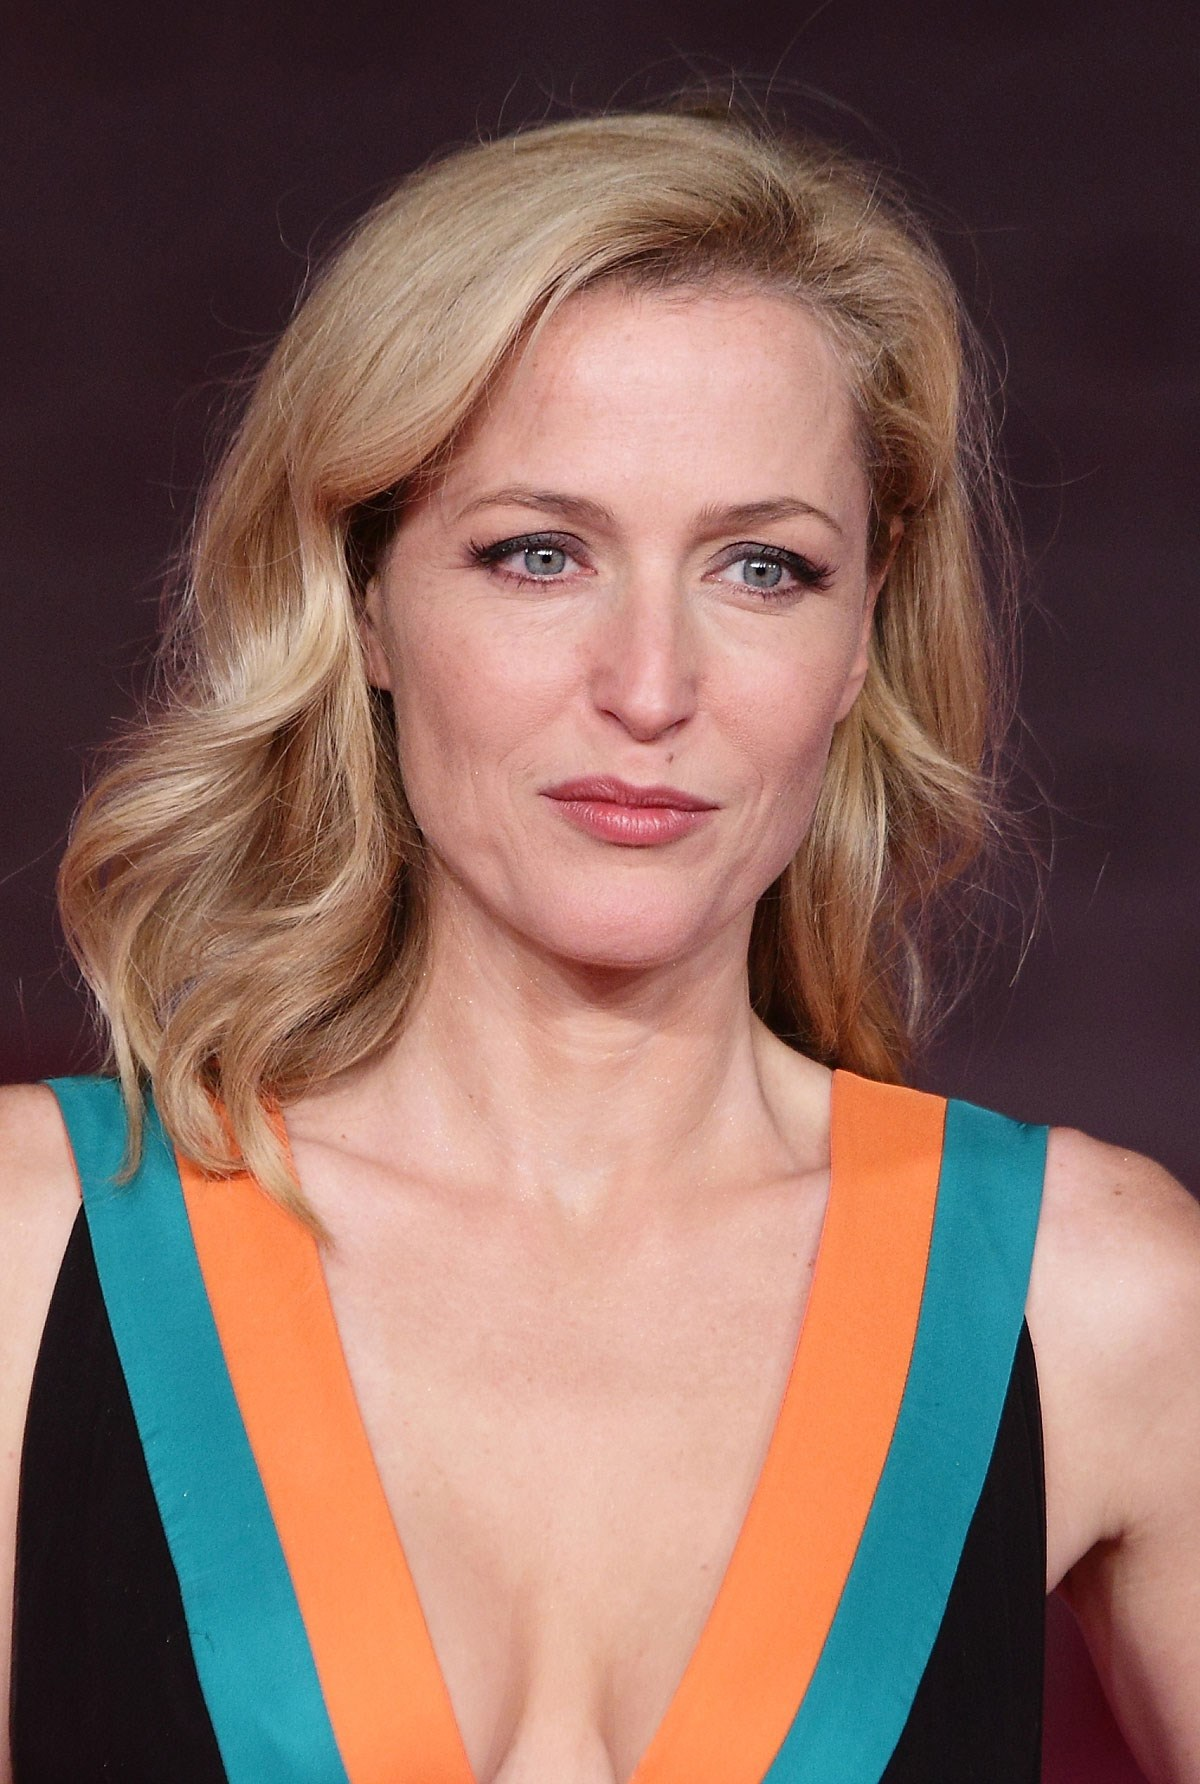 gillian anderson - photo #36